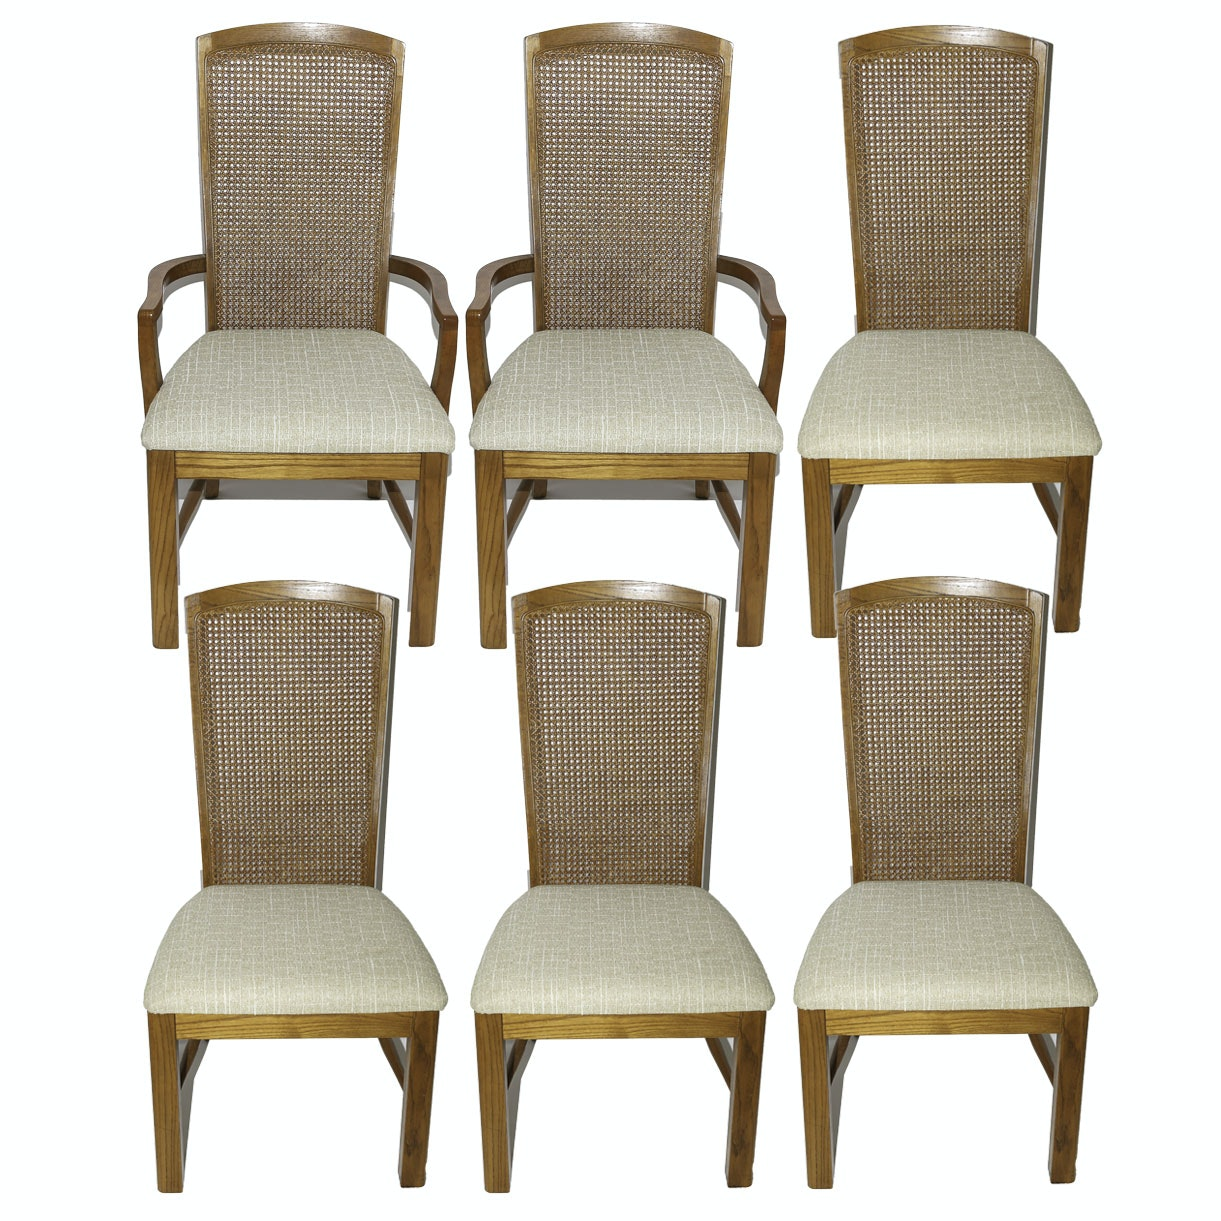 Contemporary Oak Dining Chairs with Cane Backs